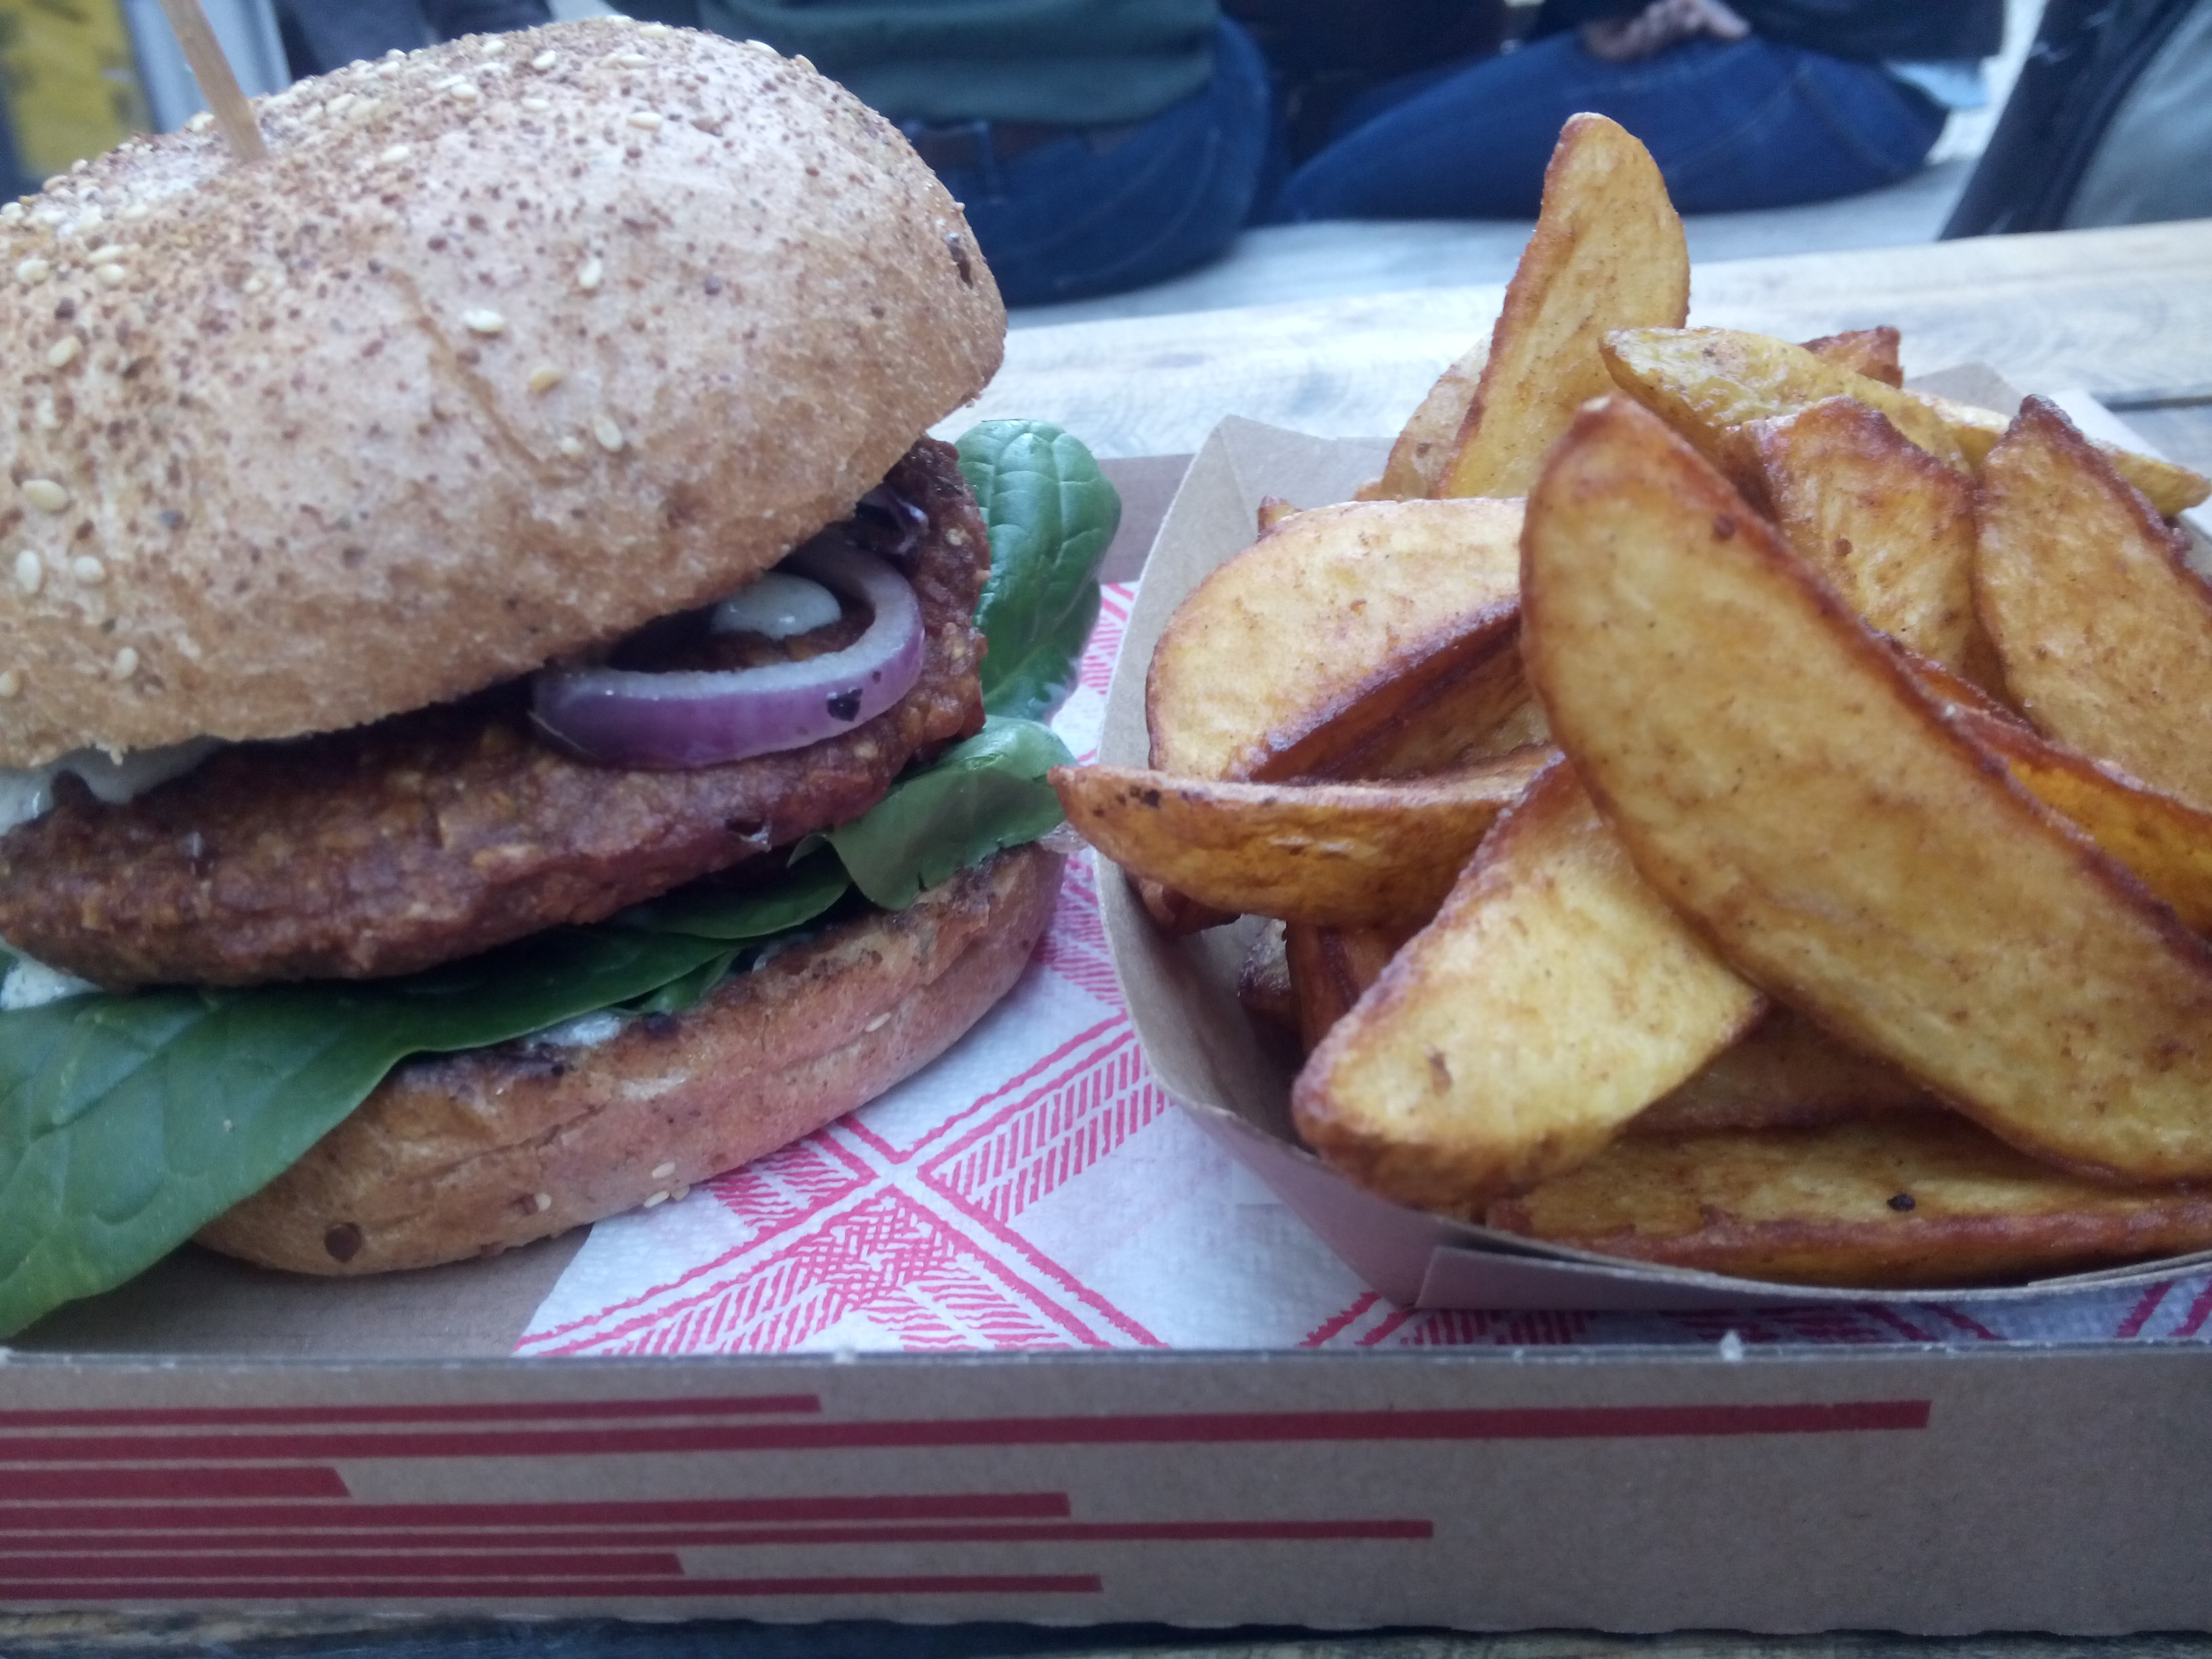 A burger poking out of a seedy bread bun with spinach and red onion, beside a cardboard tray of potato wedges